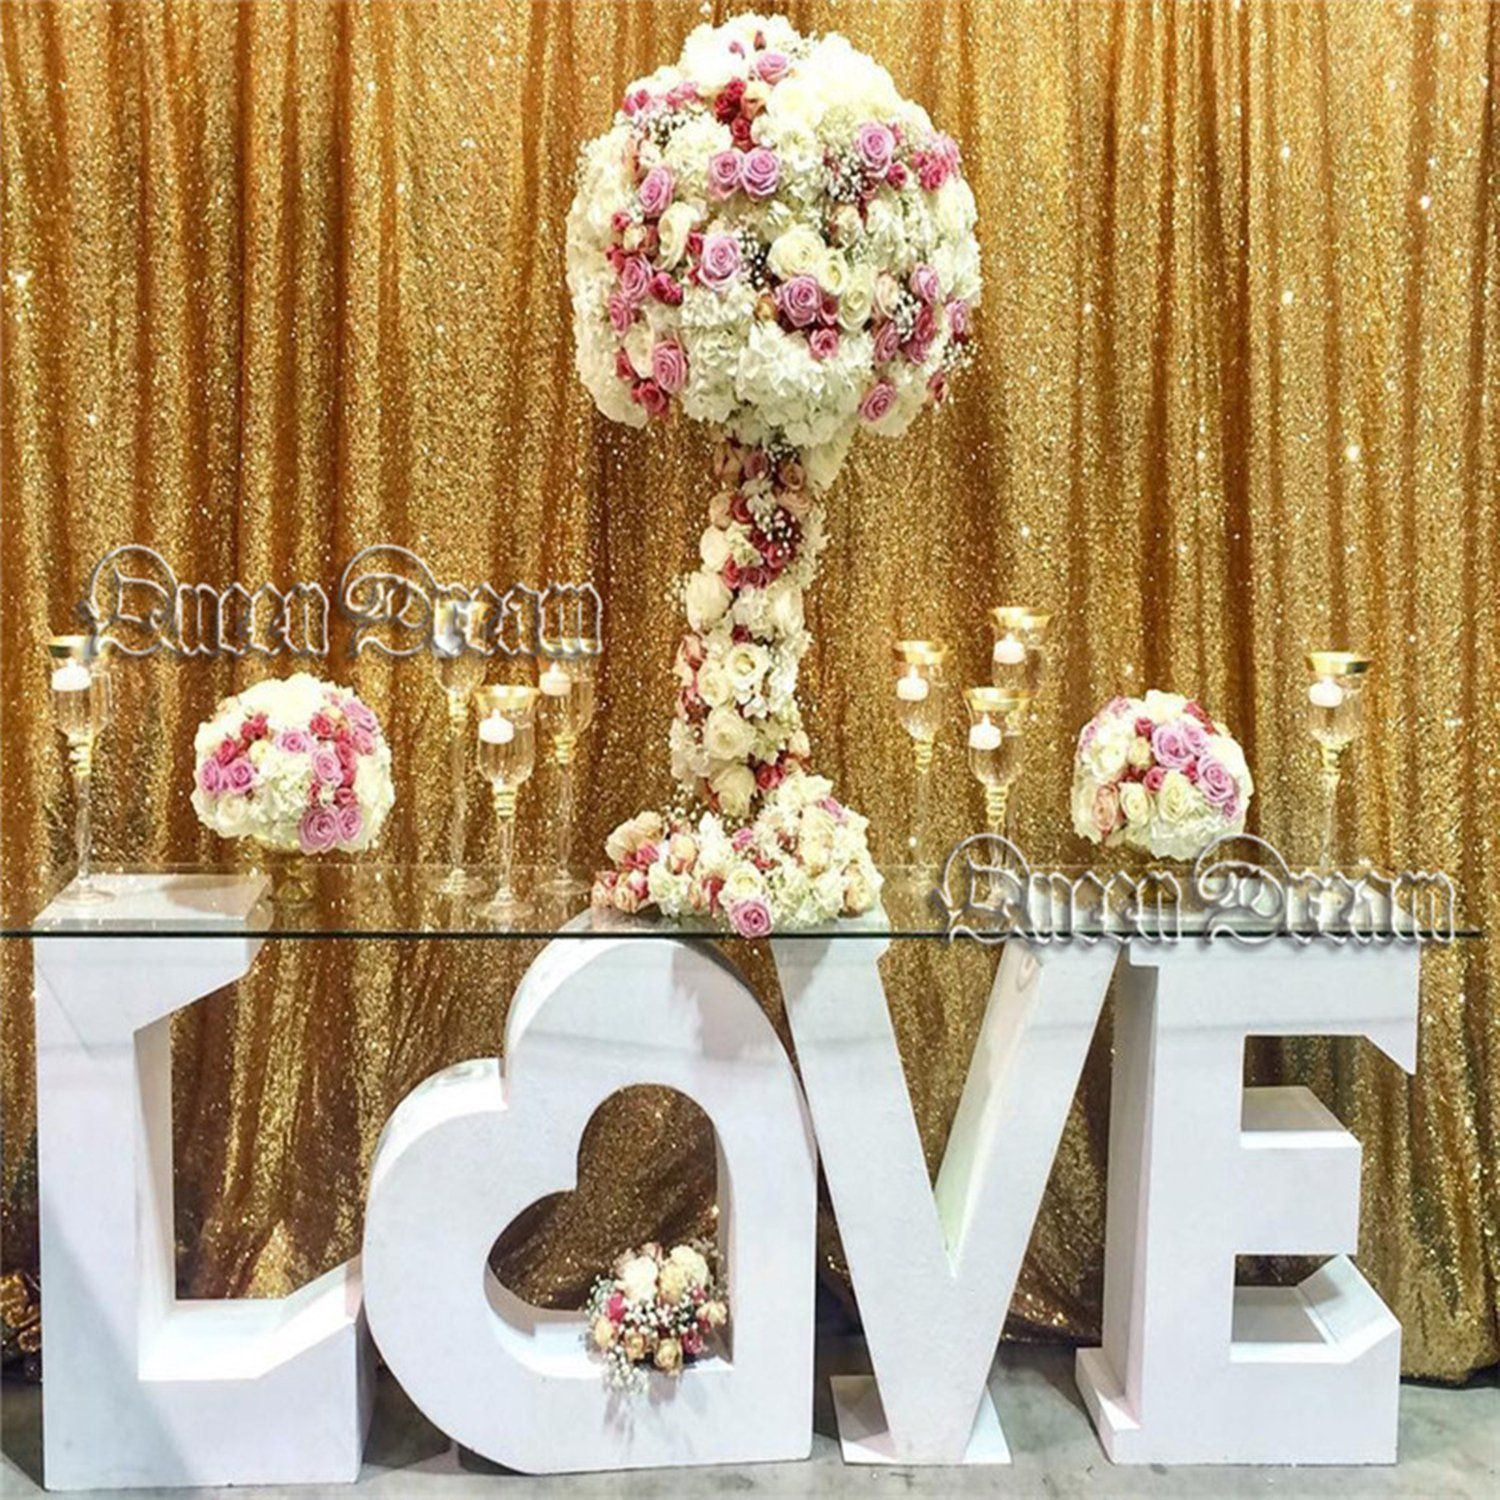 30 Unique And Breathtaking Wedding Backdrop Ideas: 30 Wedding Photo Display Ideas You'll Want To Try